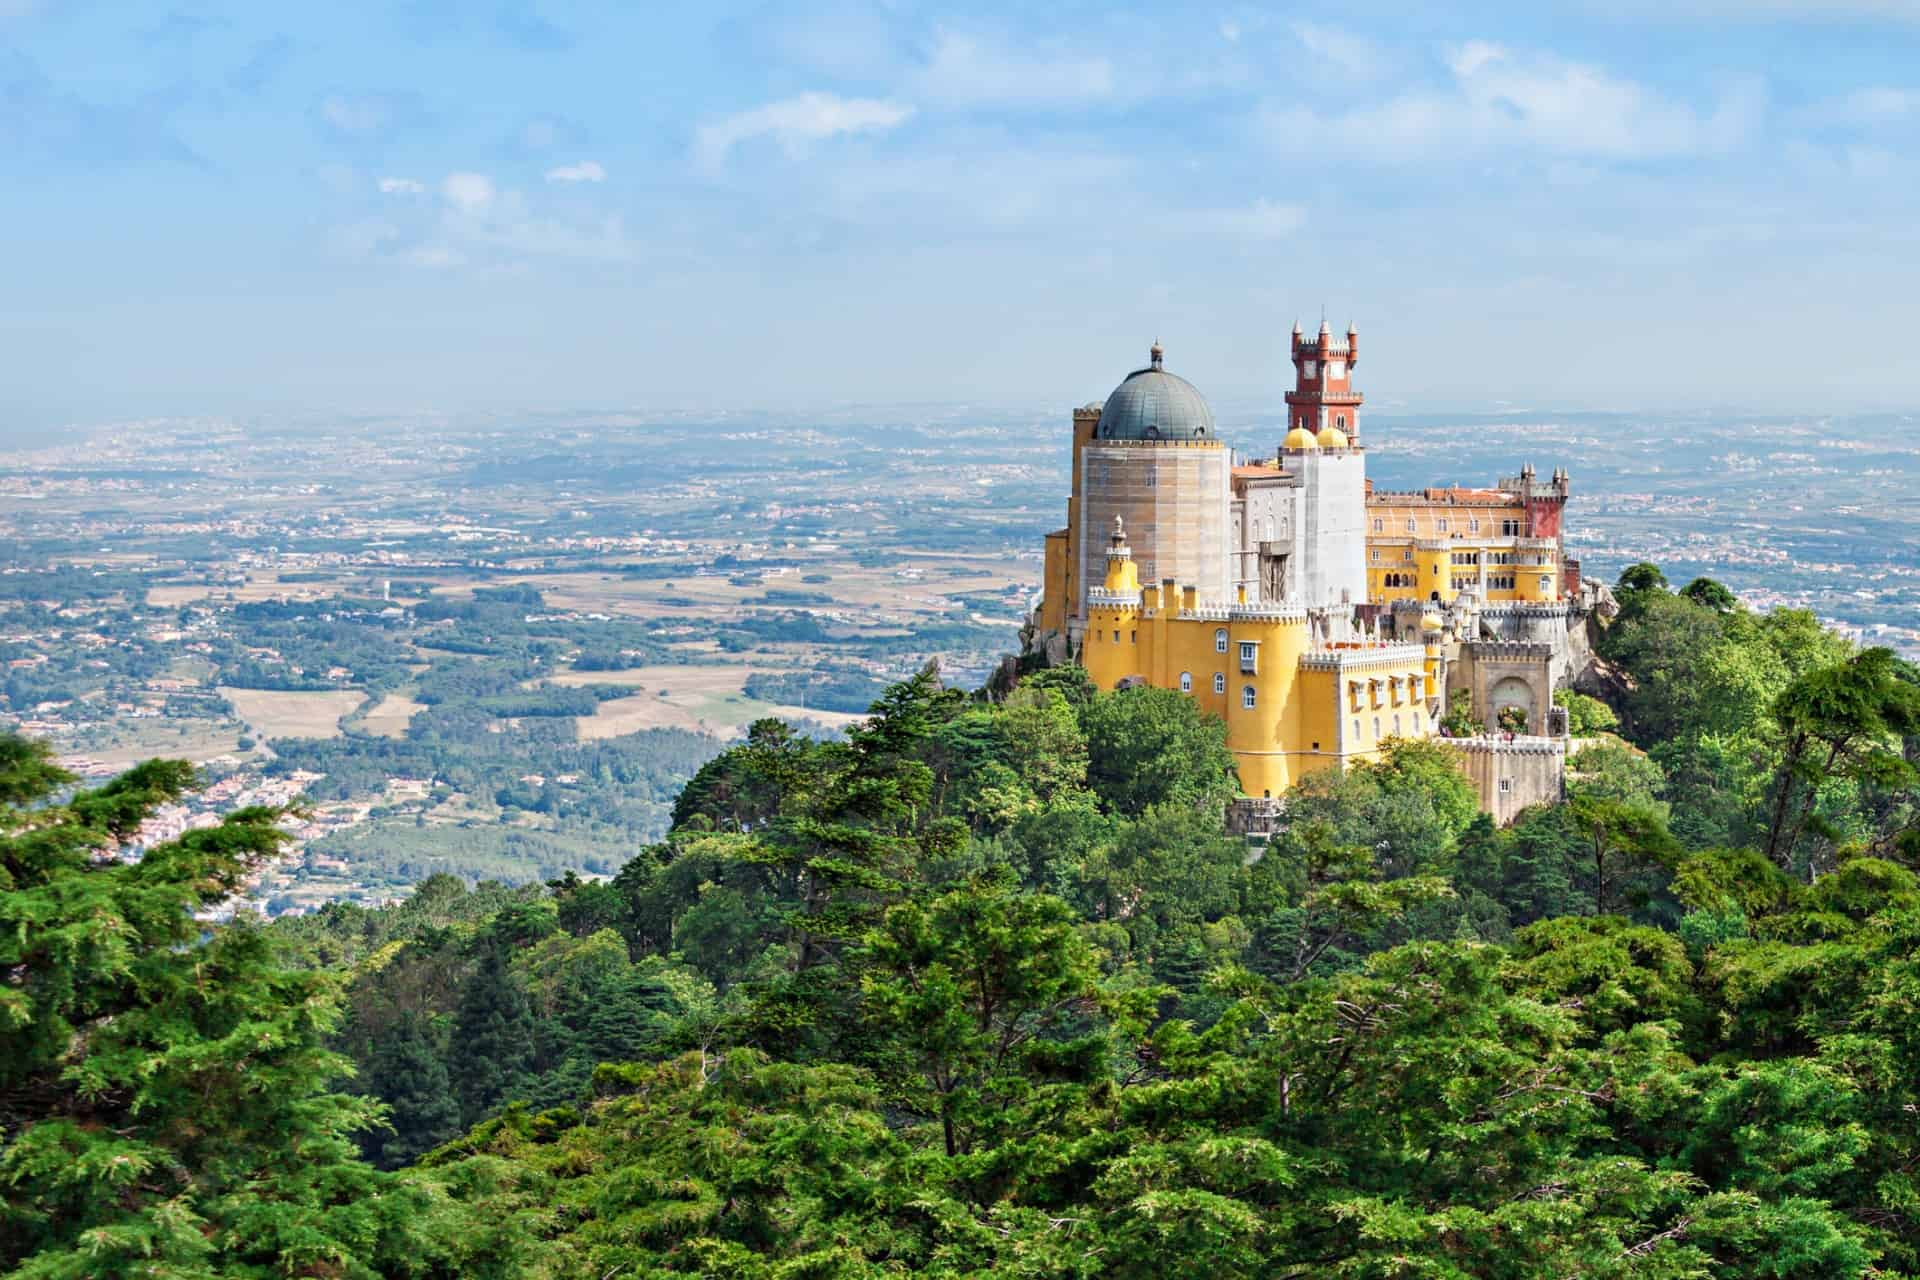 The Pena National Palace Sao Pedro de Penaferrim, Sintra, Portugal